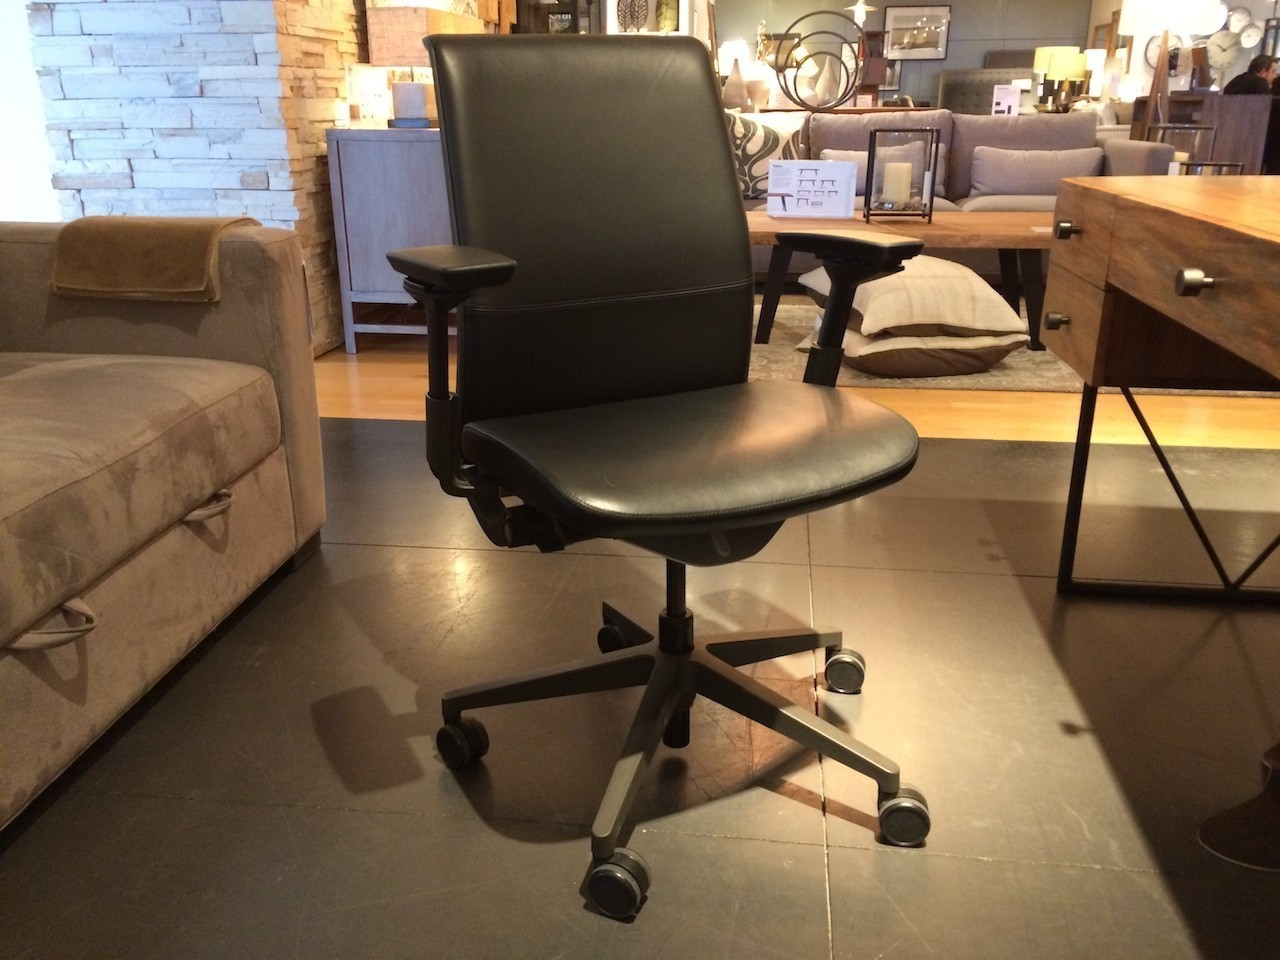 Steelcase Think Chair A Not So Positive Steelcase Think Chair Review Office Thrones